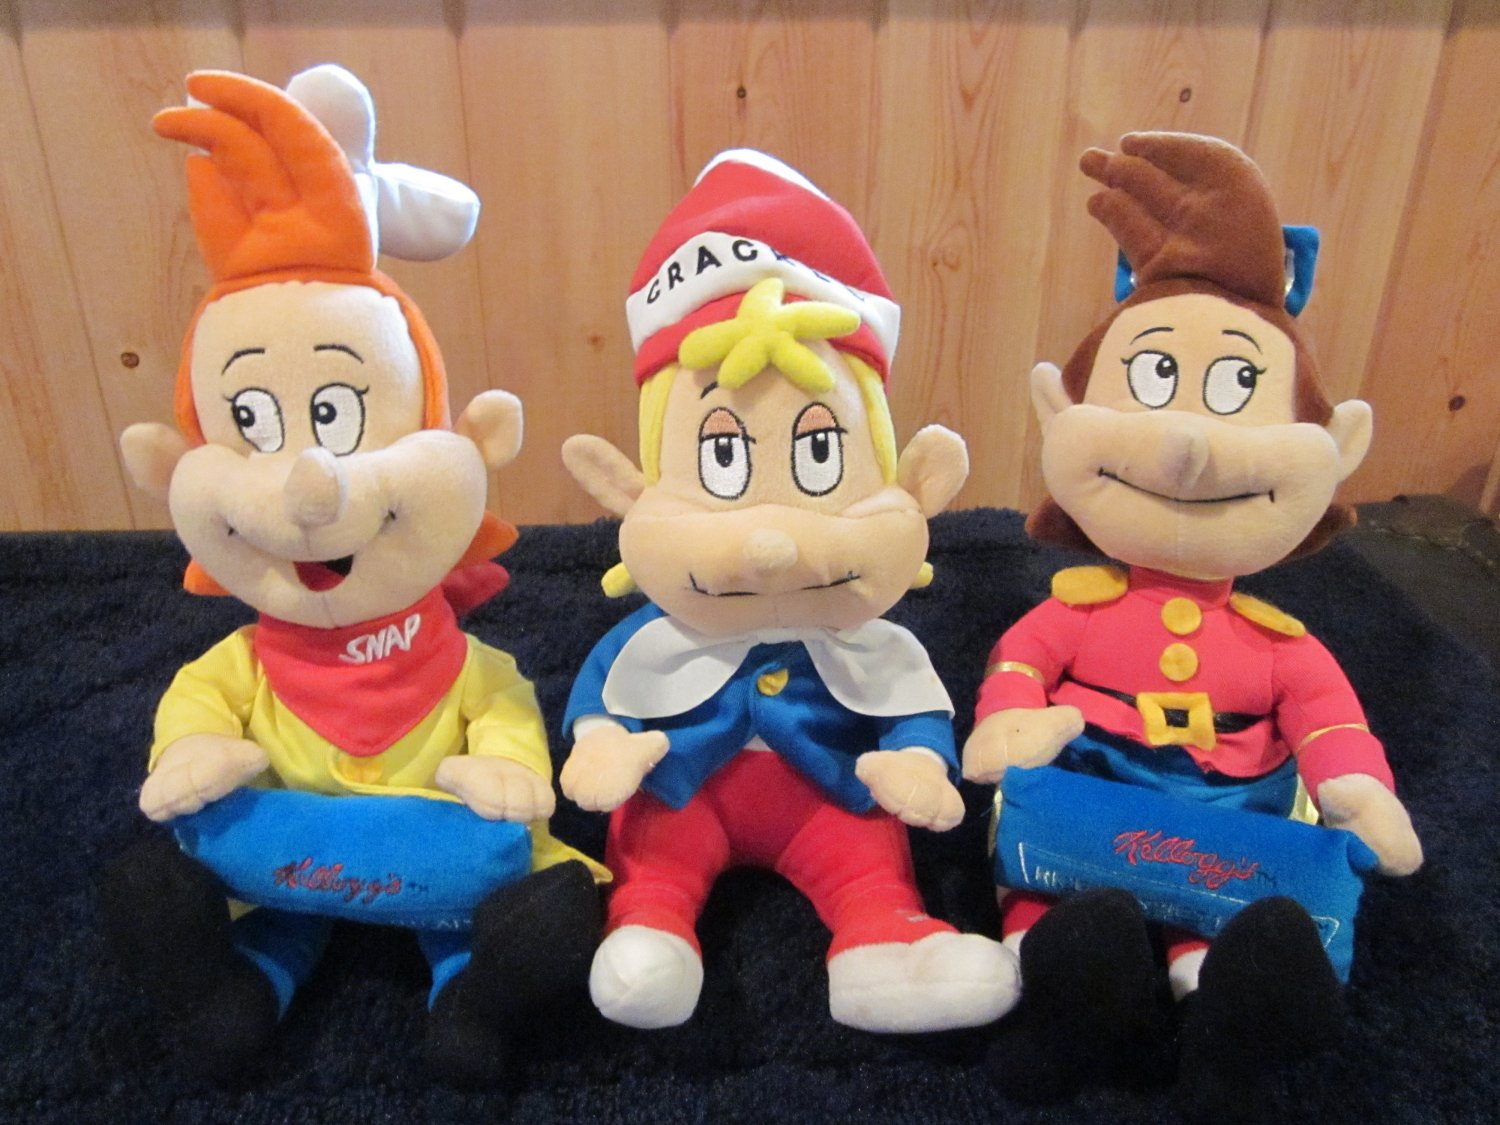 Kellogg's Rice Krispies Snap Crackle Pop Plush Dolls from 1999